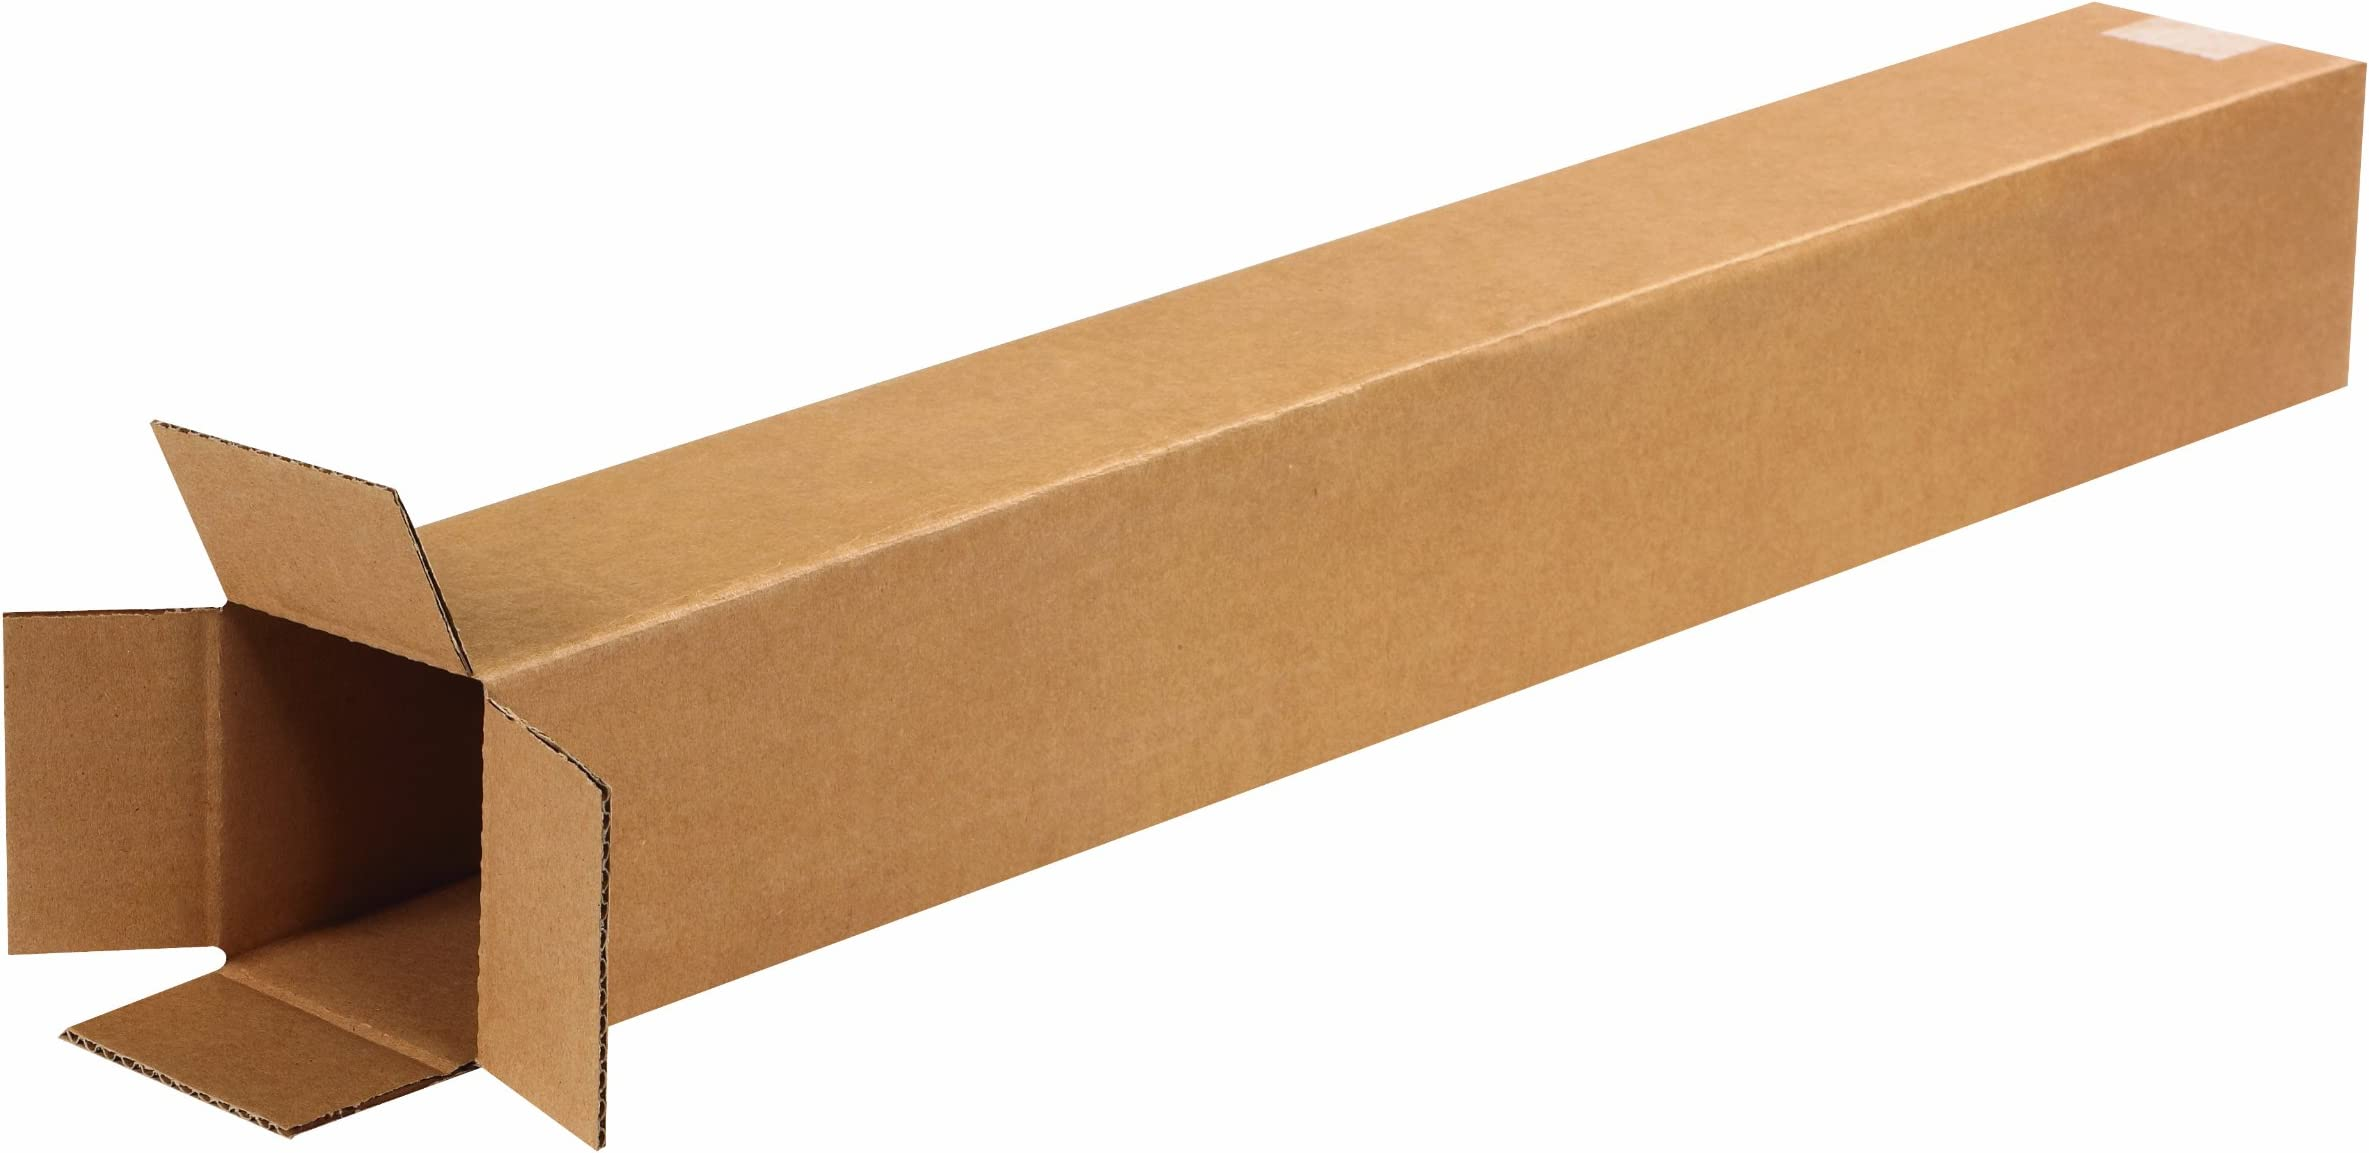 Kraft Packing and Moving Pack of 25 for Shipping Aviditi 8830 Tall Corrugated Cardboard Box 8 L x 8 W x 30 H